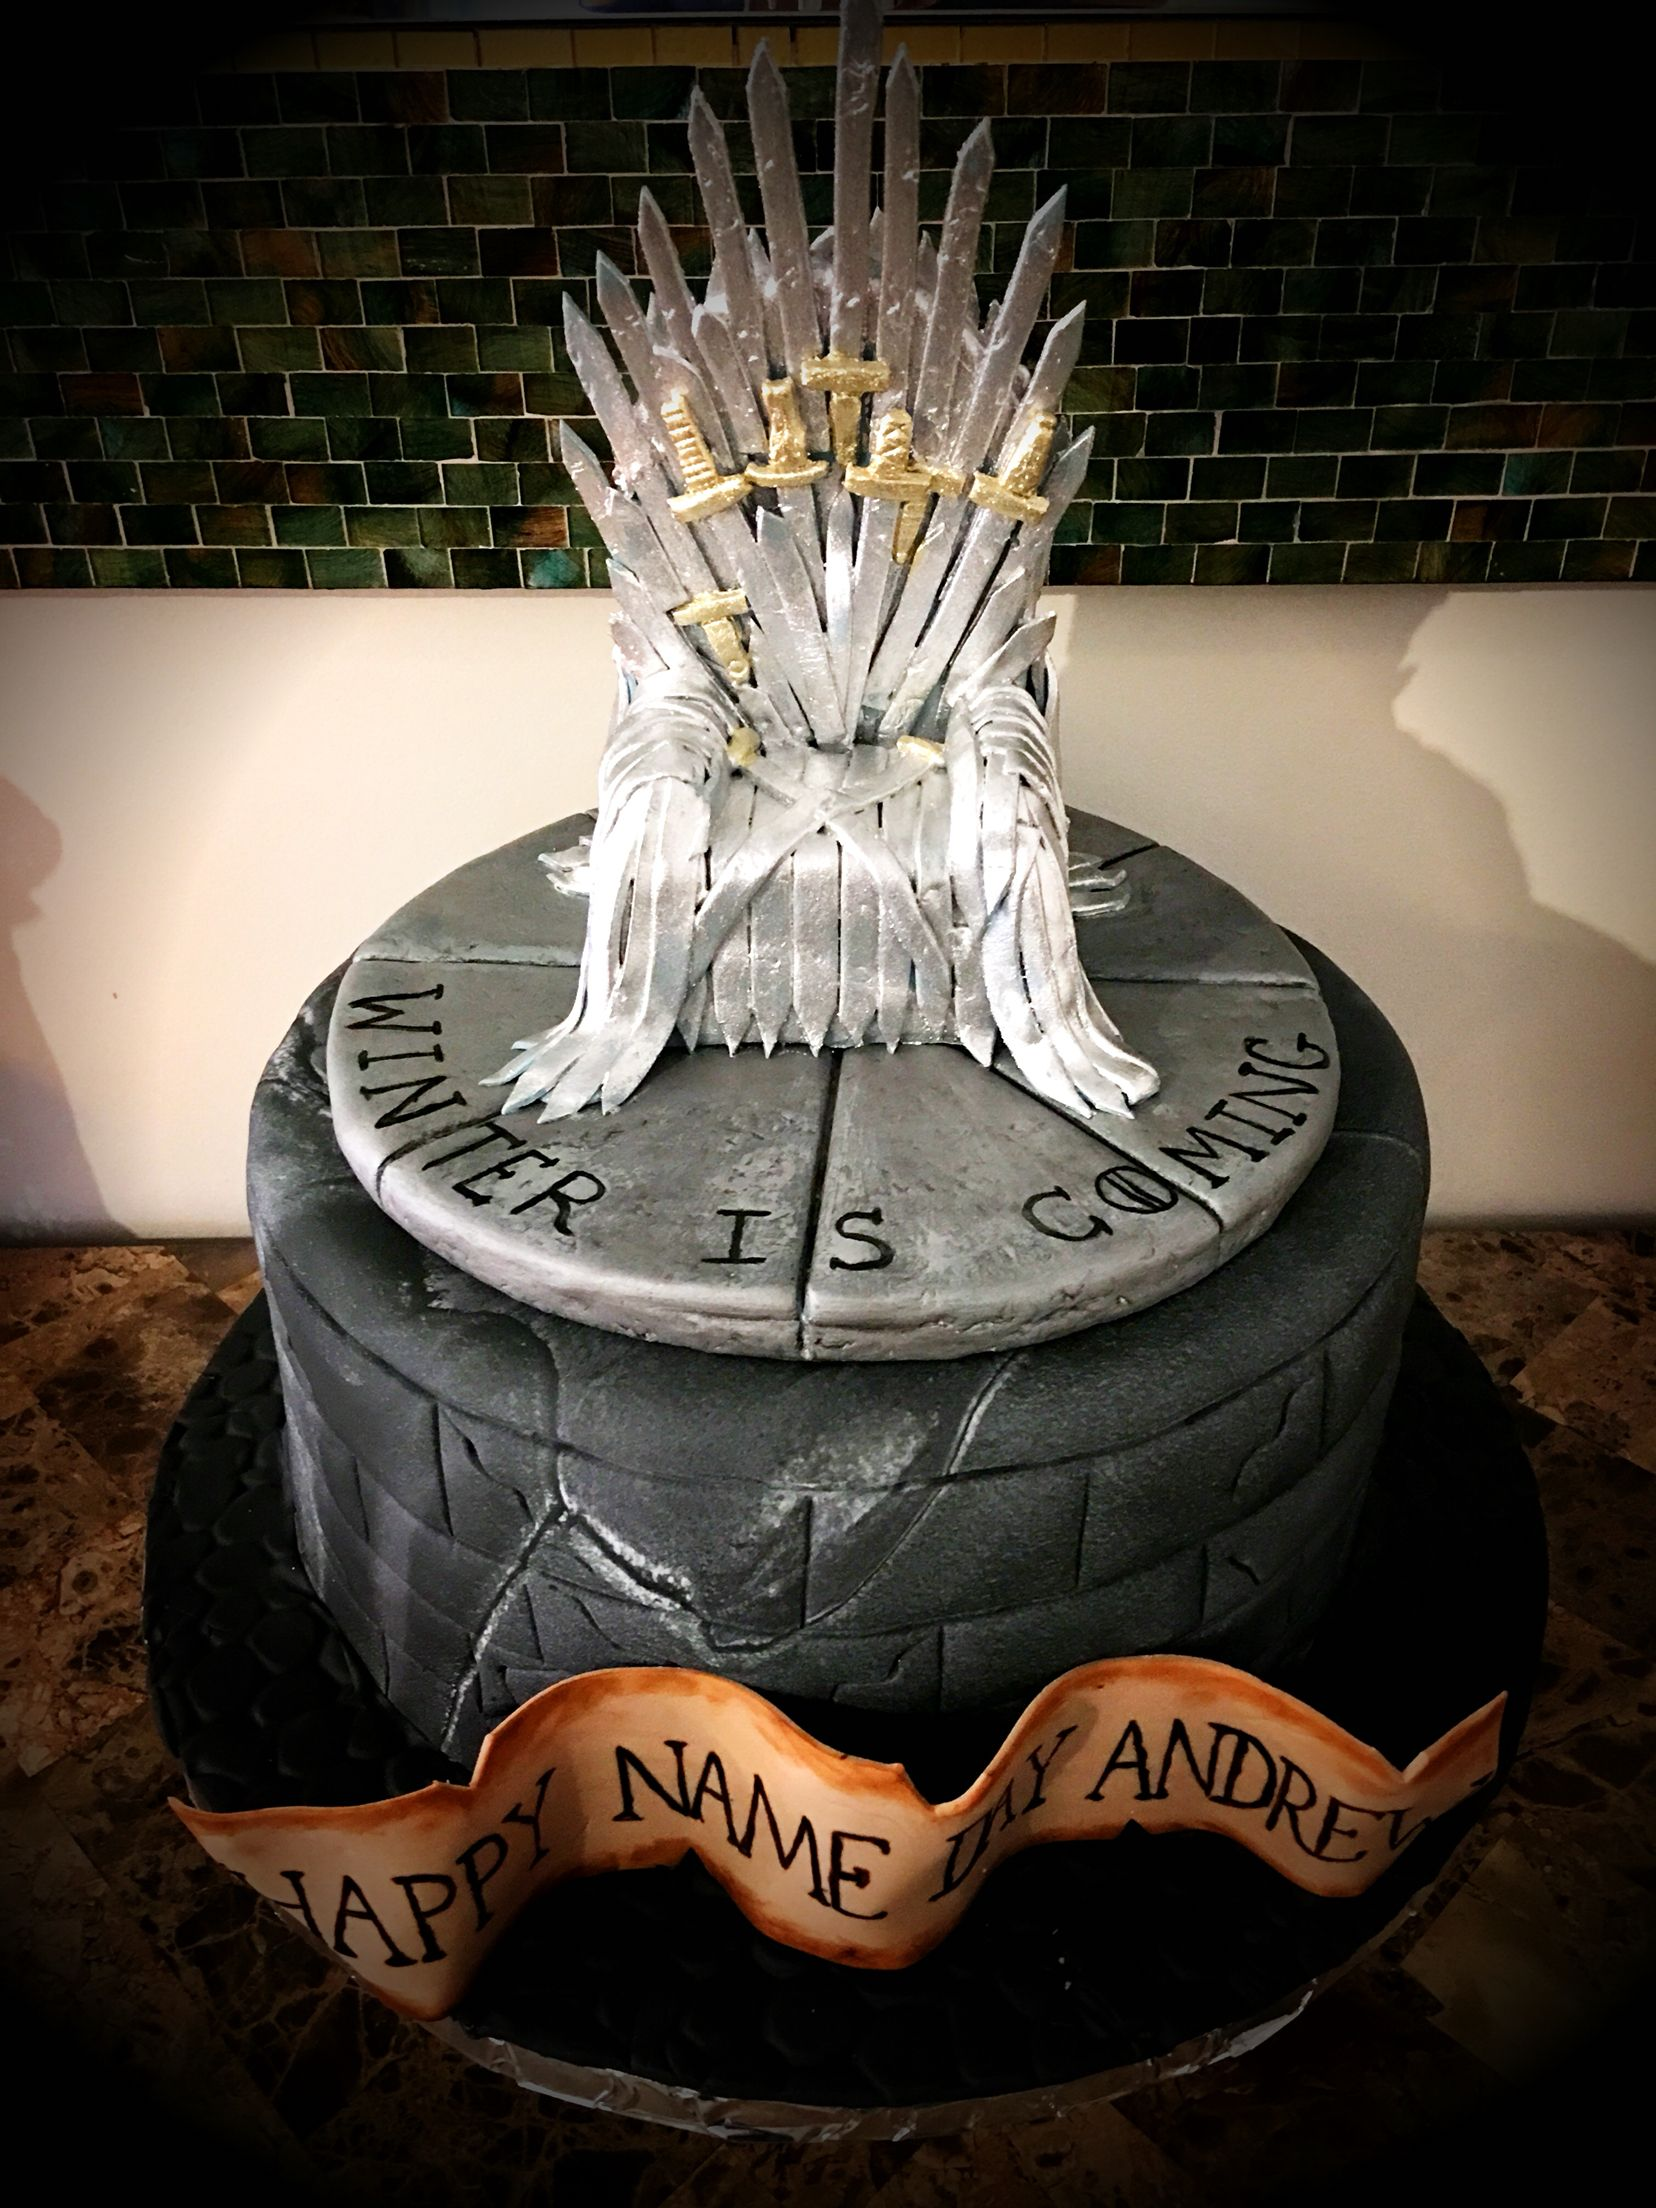 Game Of Thrones Cake Game Of Thrones Cake 30th Birthday Cakes For Men Game Of Thrones Birthday Cake